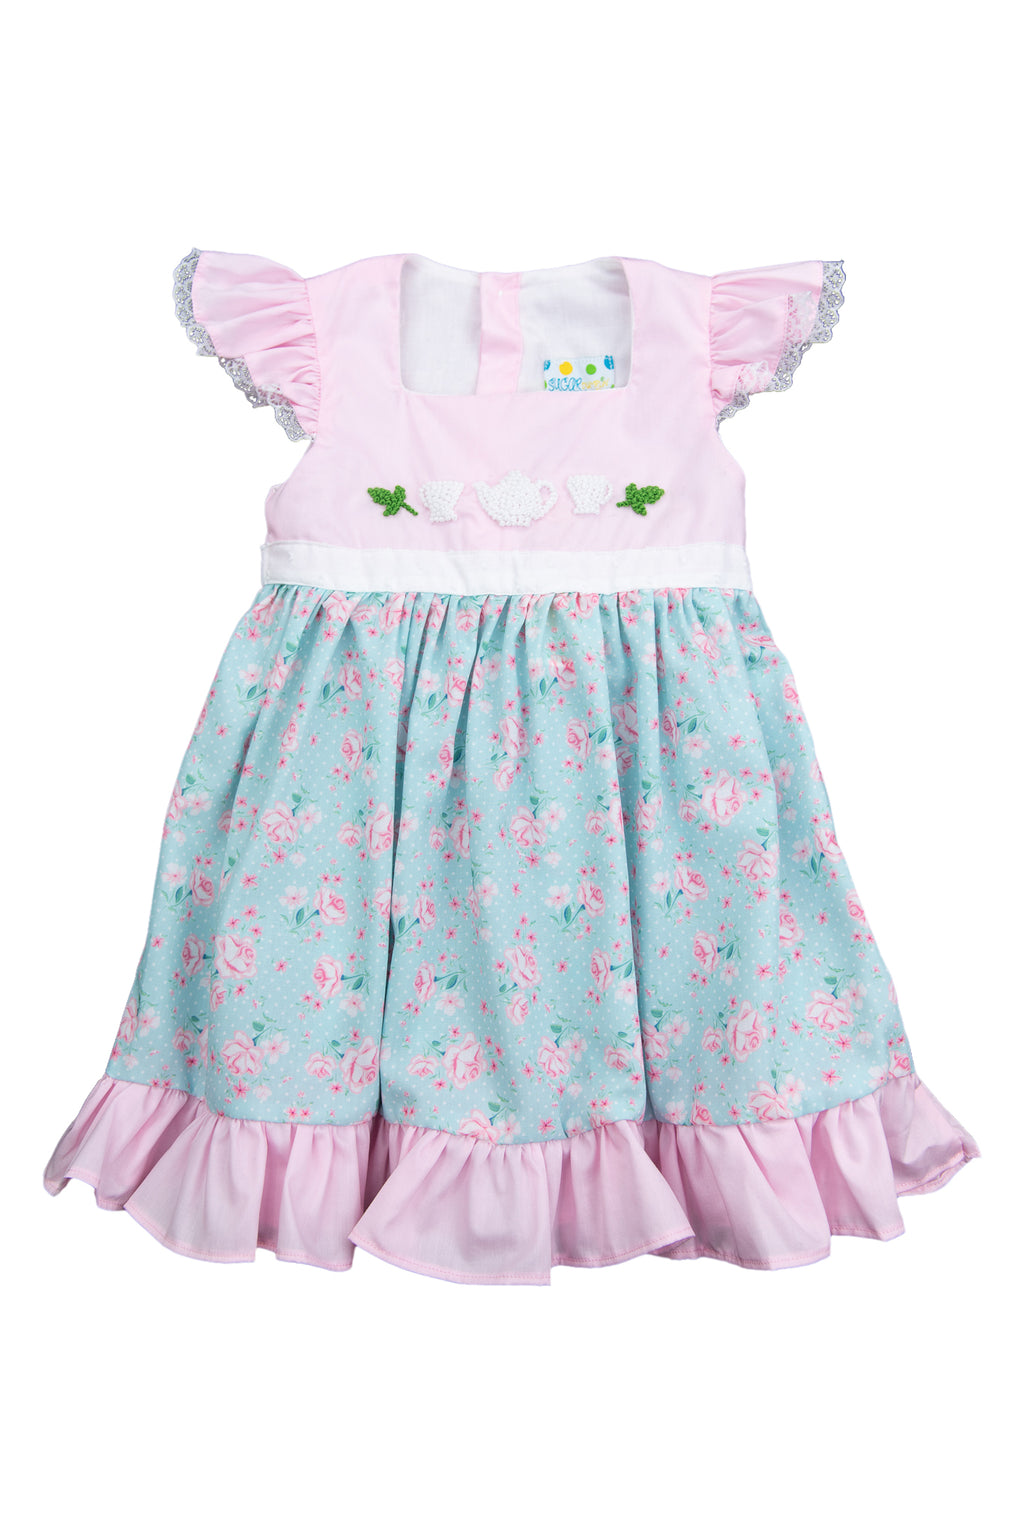 Girls French Knot Tea Party Dress